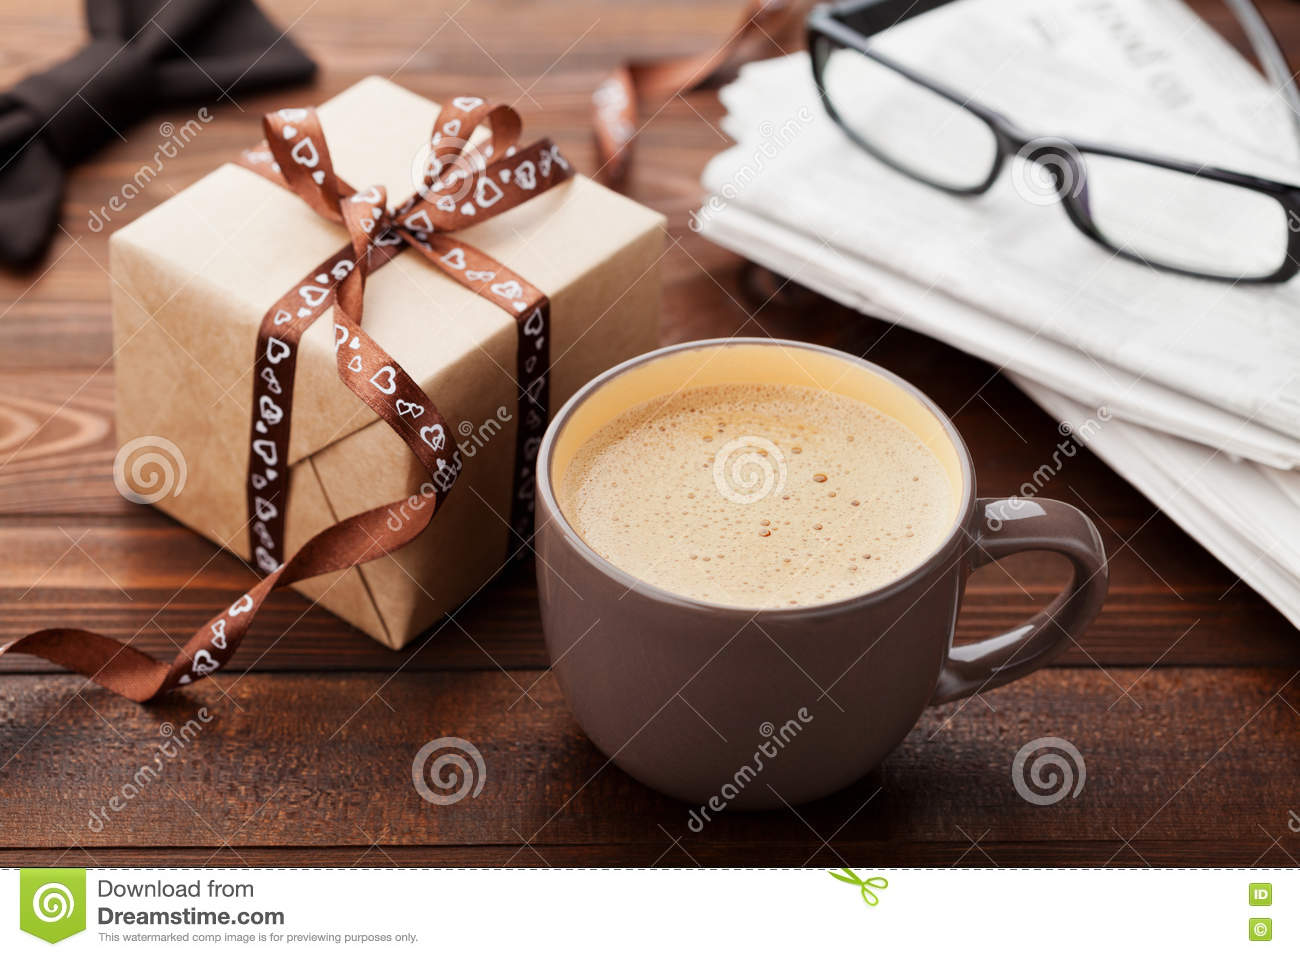 Morning cup of coffee, gift, newspaper, glasses and bowtie on wooden desk for breakfast on Happy Fathers Day